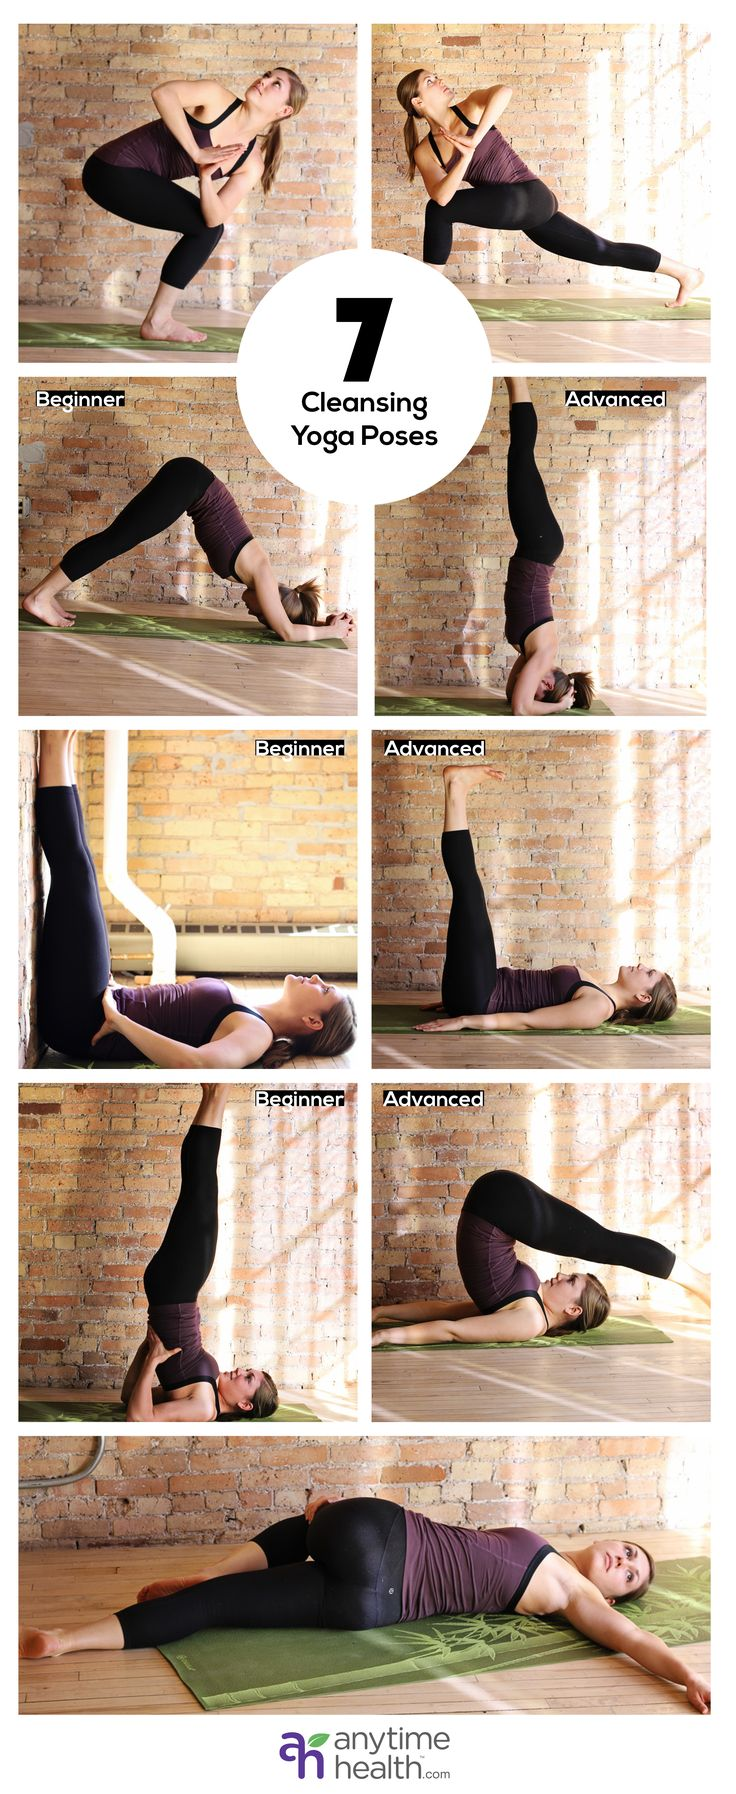 7 Cleansing Yoga Poses to Detoxify Your Bod // From left to right -- Twisting Chair Pose, Twisting Crescent Lunge, Dolphin Pose, Supported Headstand, Supported Leg Up Wall Pose, Leg Up Wall Pose,  Supported Shoulder Stand  Plow Pose,  Supine Spinal Twist #strong #healthy